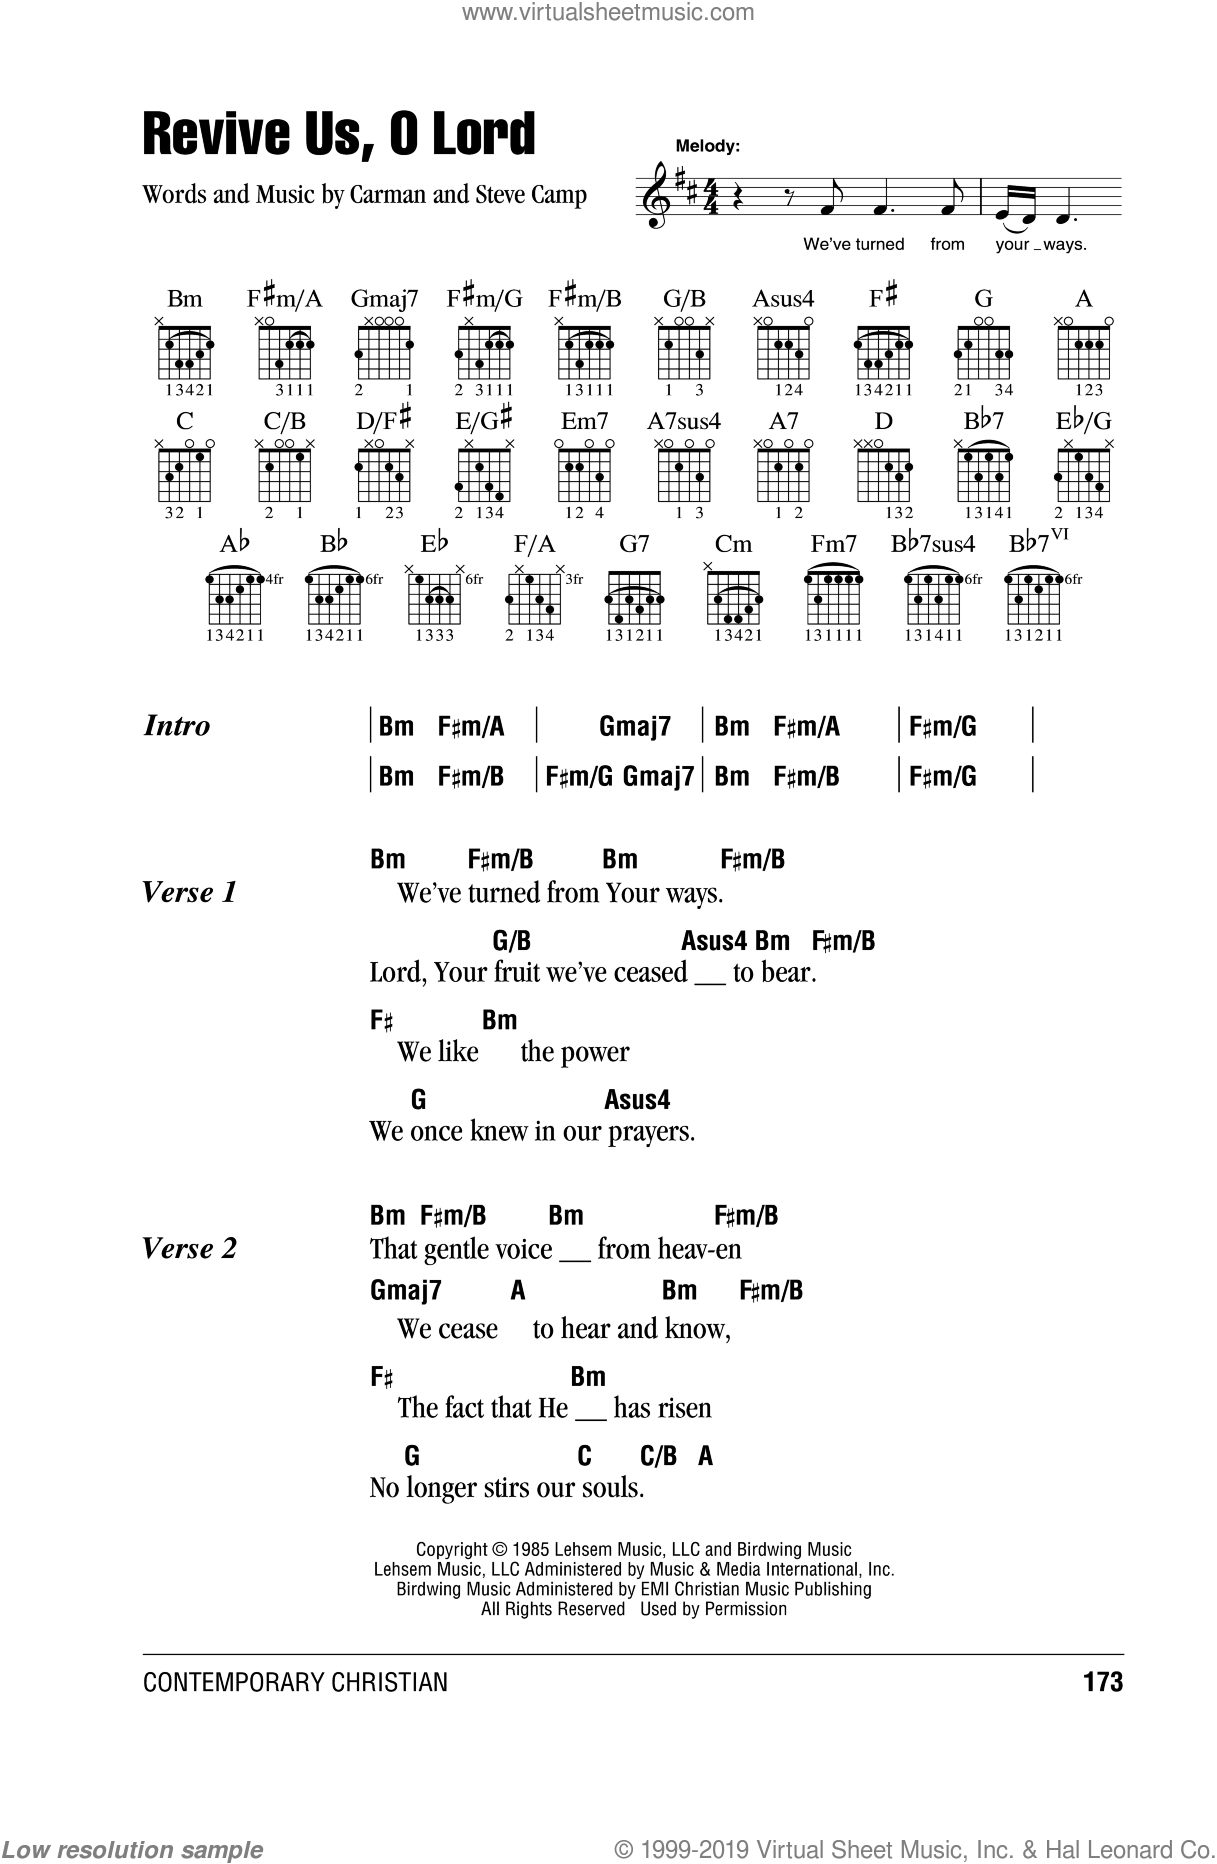 Revive Us, O Lord sheet music for guitar (chords) by Carman